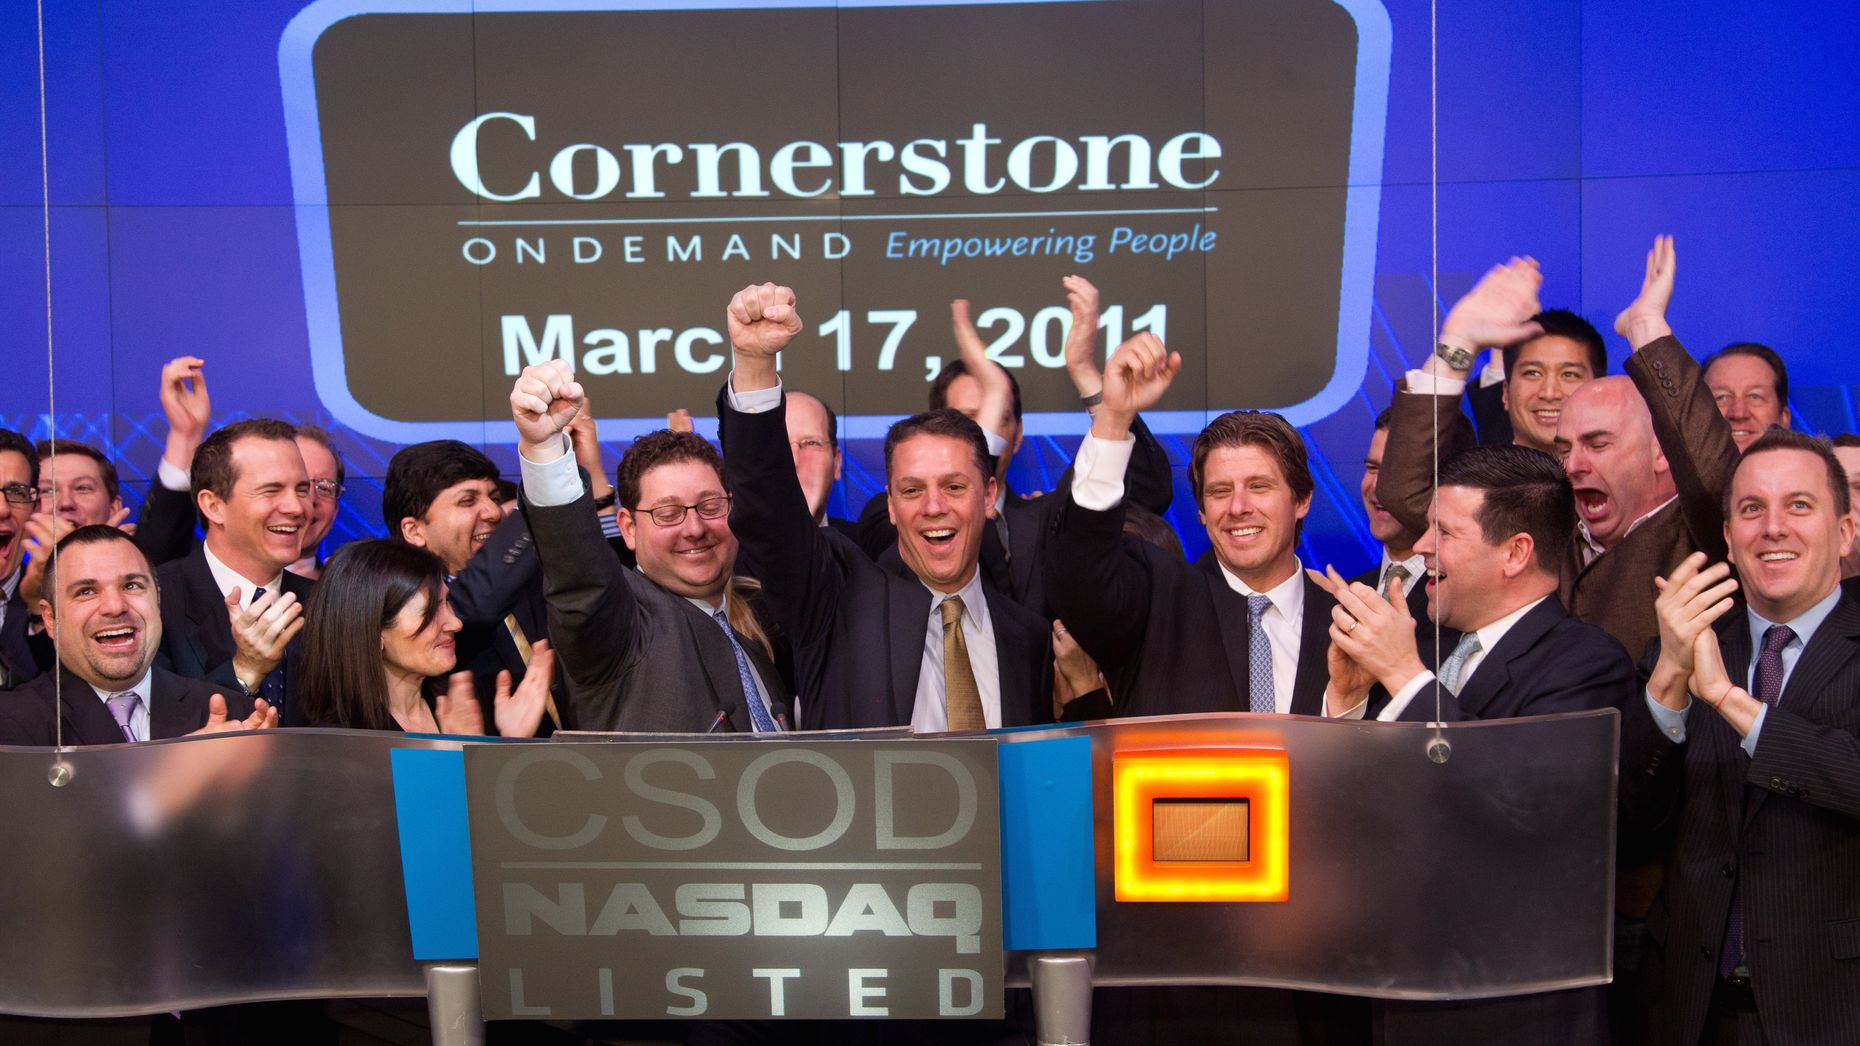 Cornerstone executives, including CEO Adam Miller in the center, on the day the company listed on Nasdaq. Photo by Nasdaq.